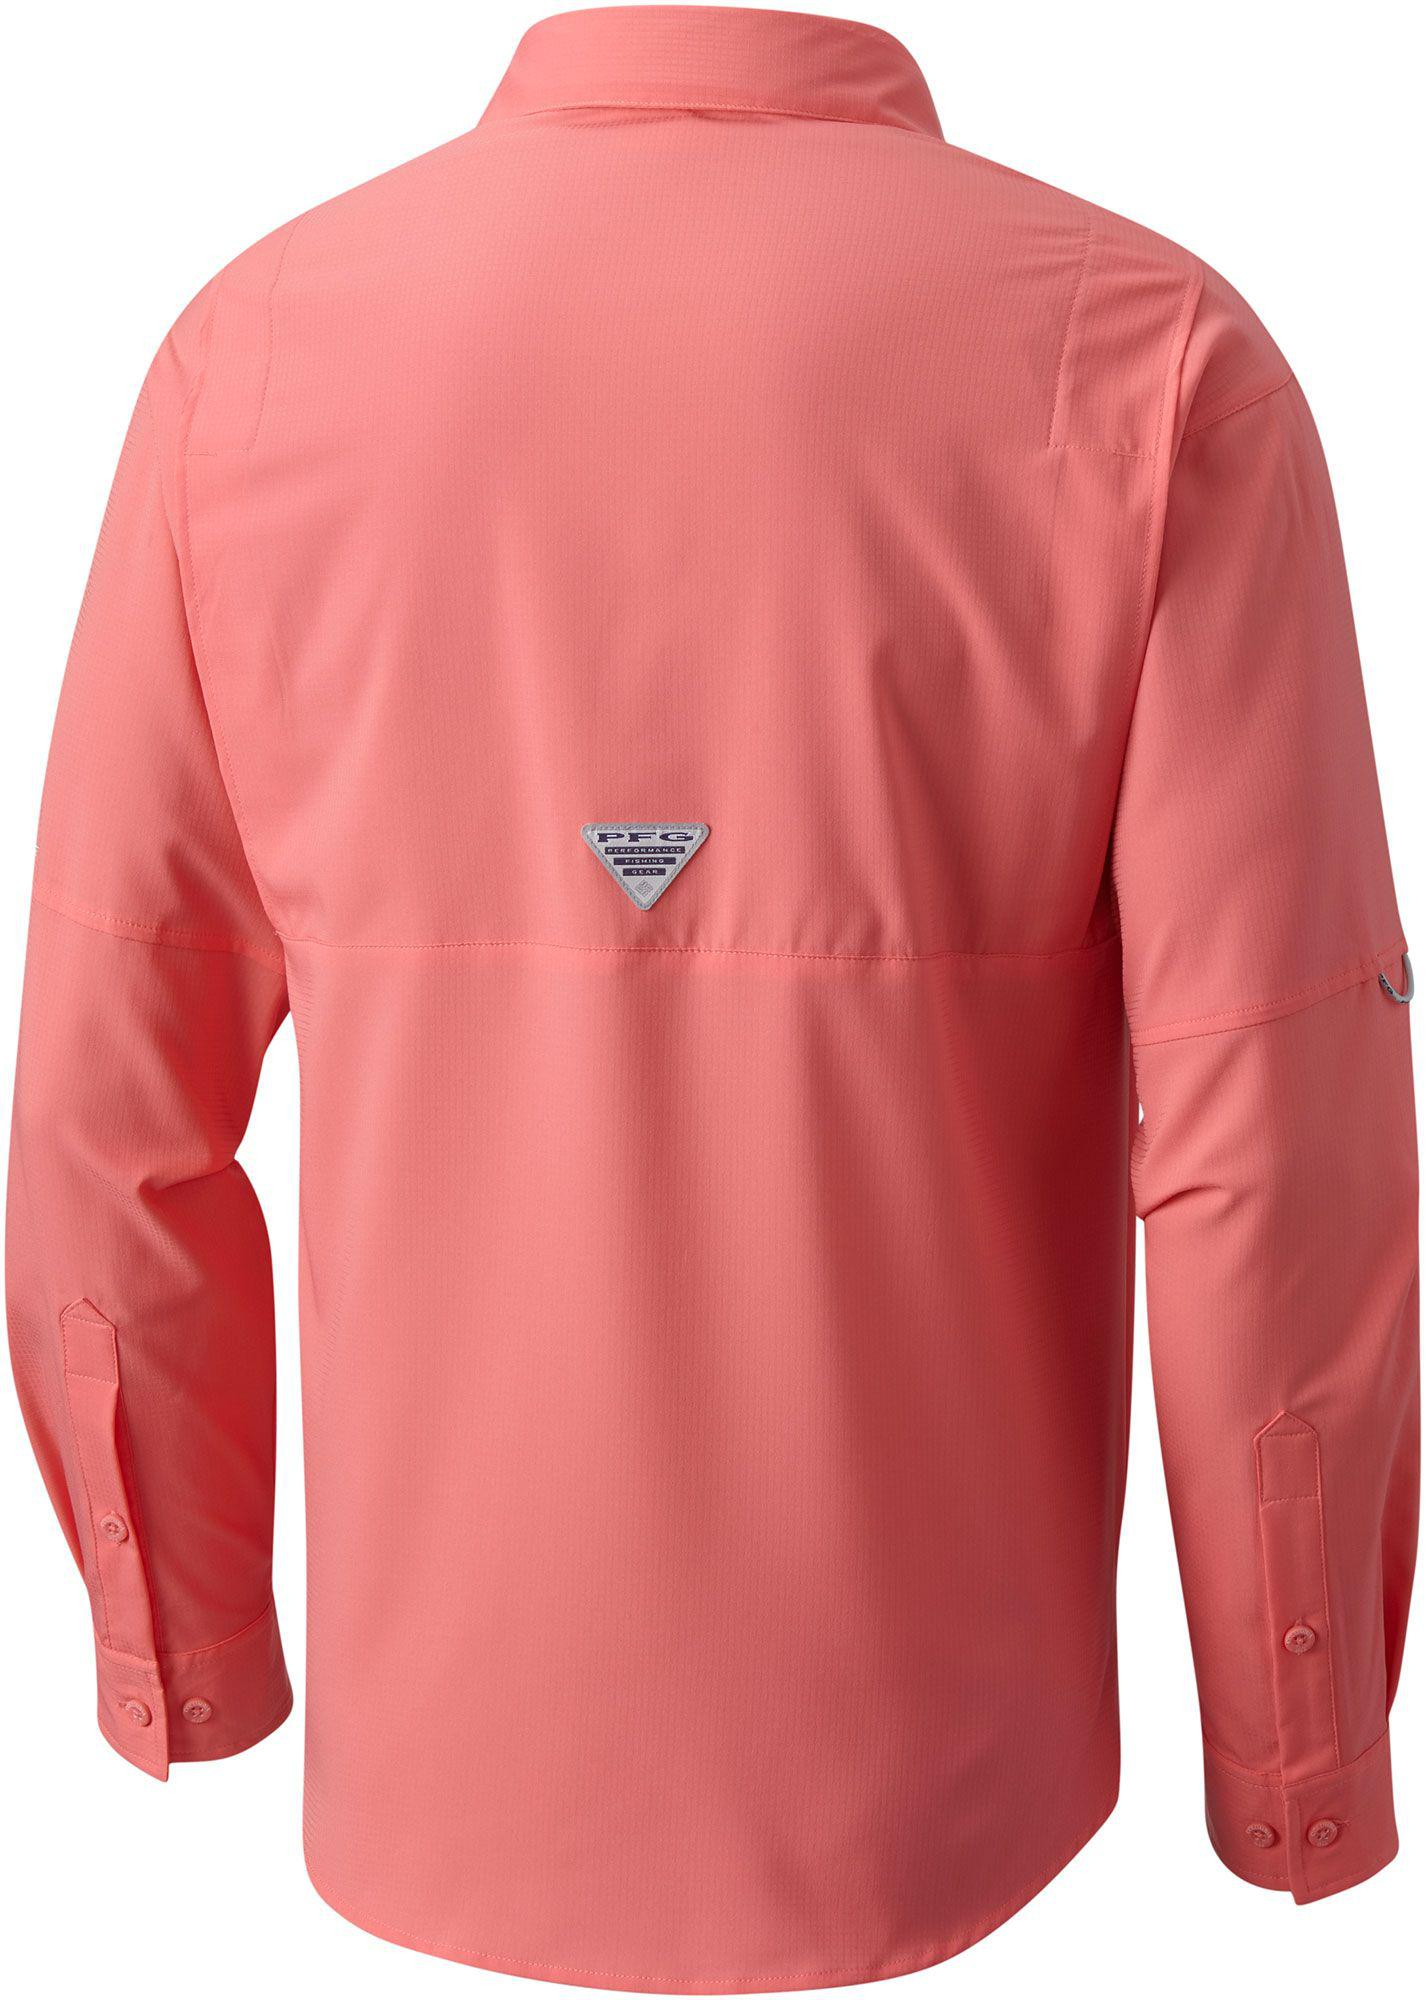 3a57fdf059c Columbia Pfg Tamiami Ii Long Sleeve Shirt in Pink for Men - Lyst